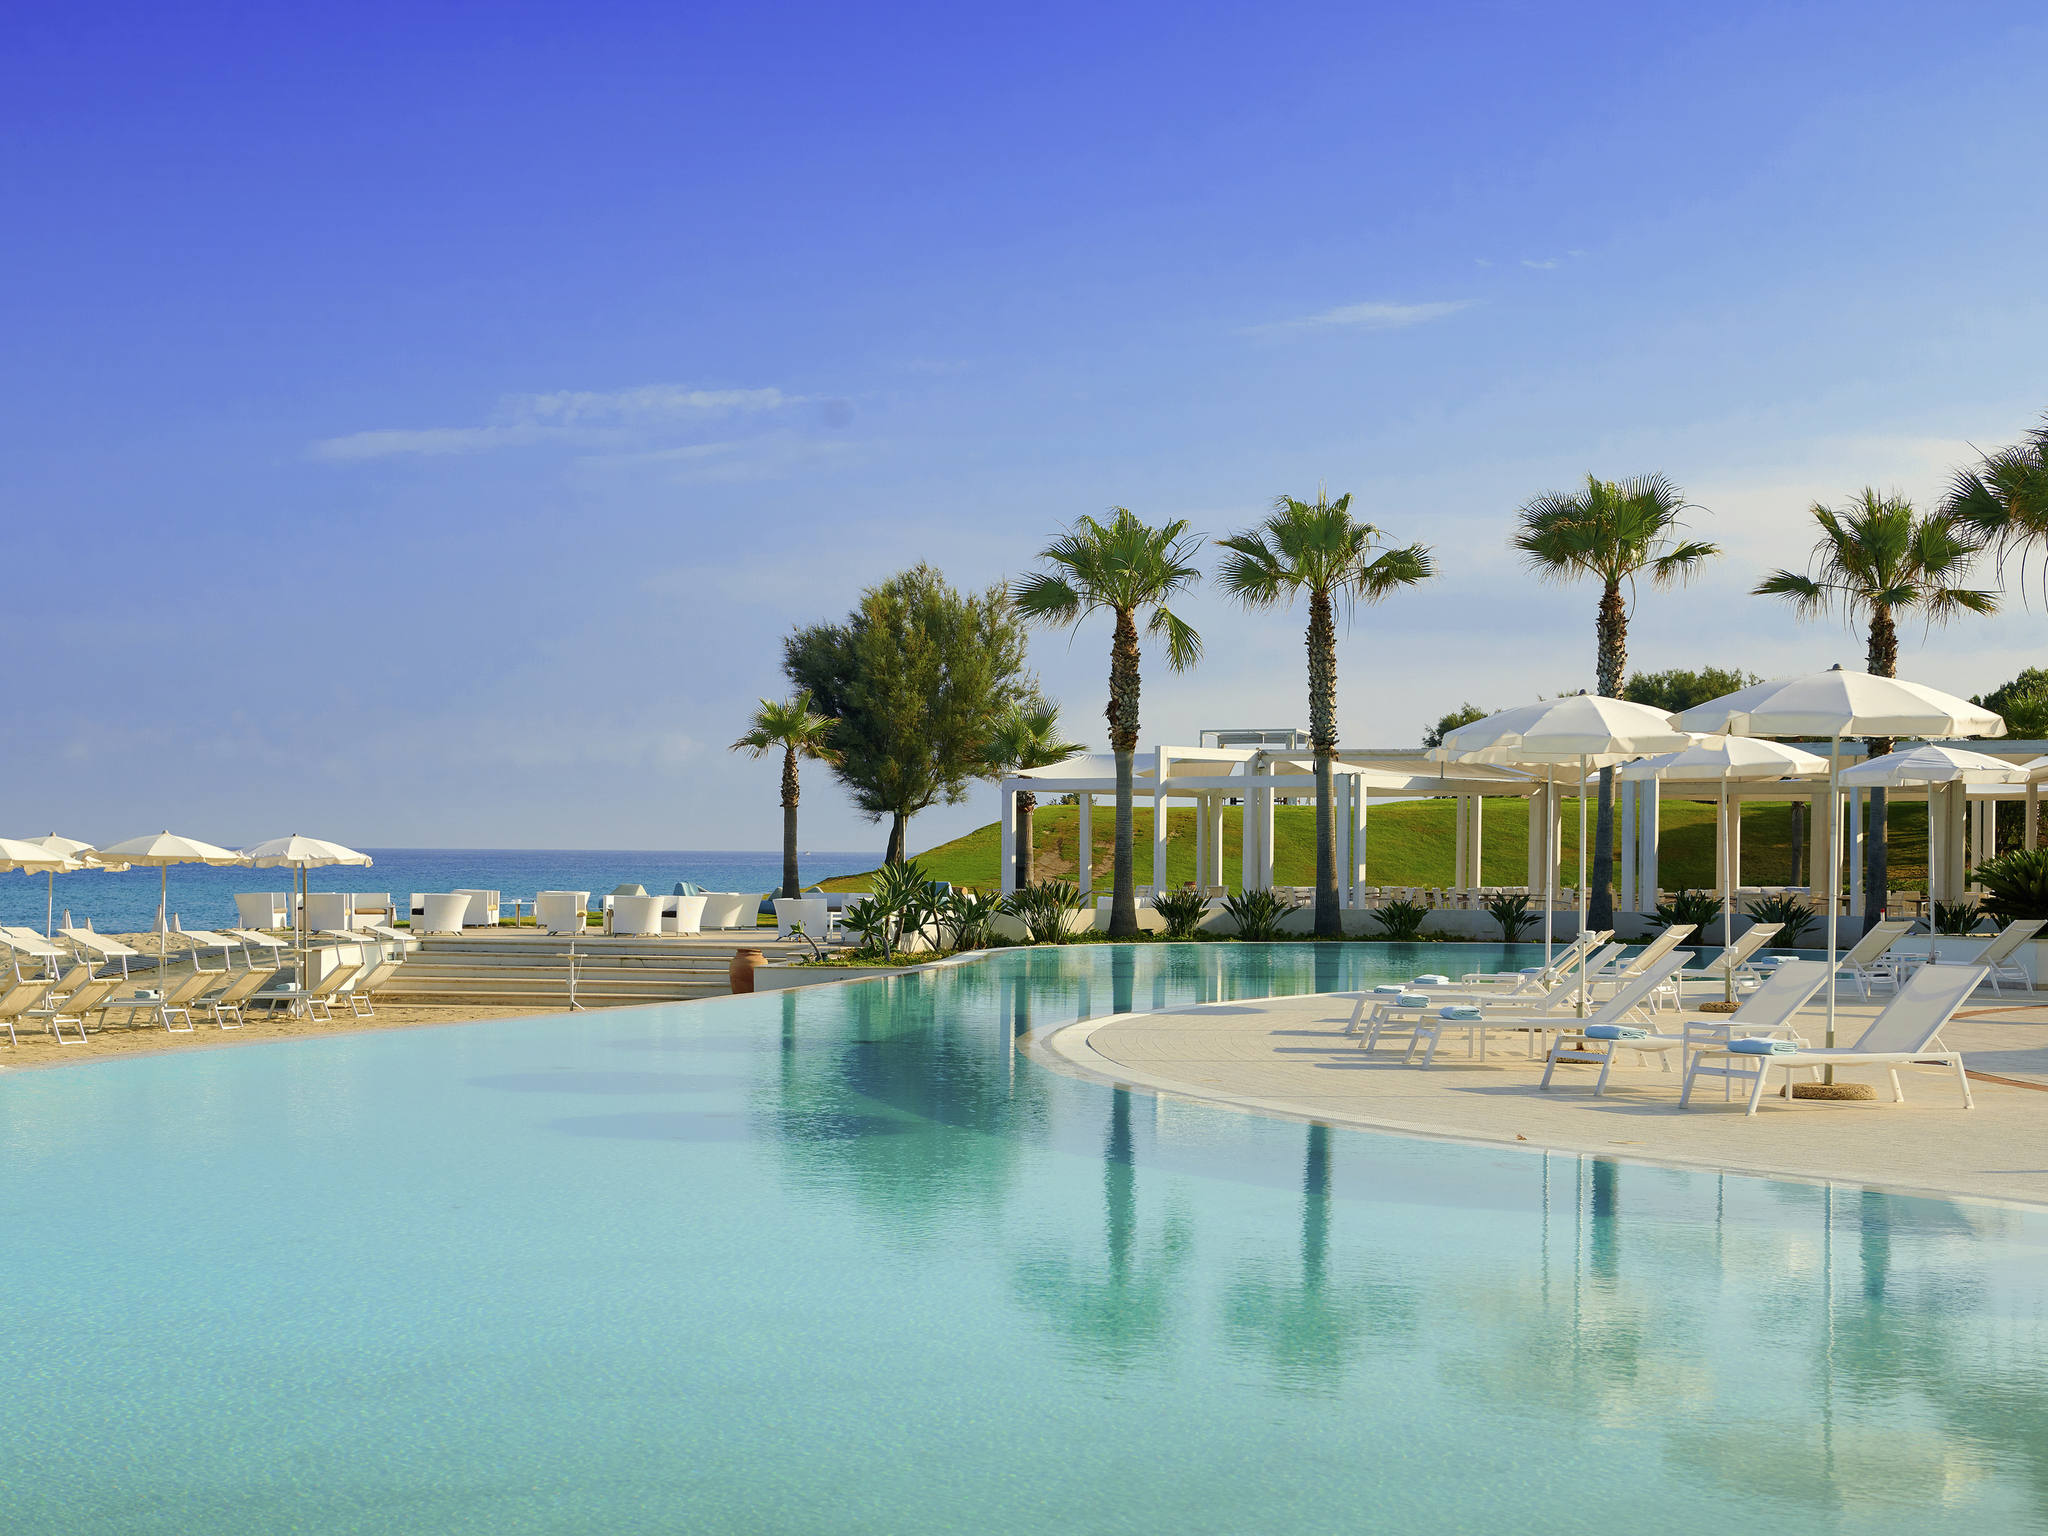 Hotel – Capovaticano Resort Thalasso & Spa - MGallery by Sofitel